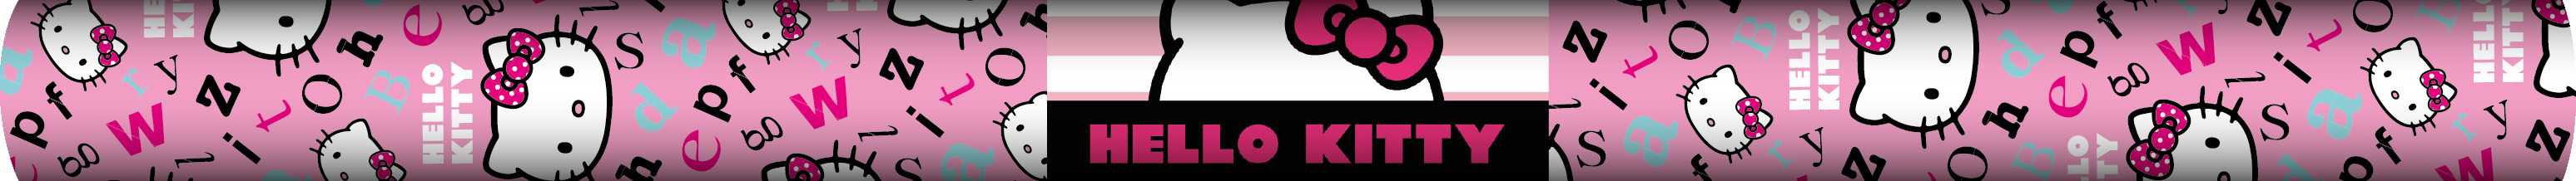 Hello Kitty - 1m x 700mm Book Cover Wrap - 1 Sheet